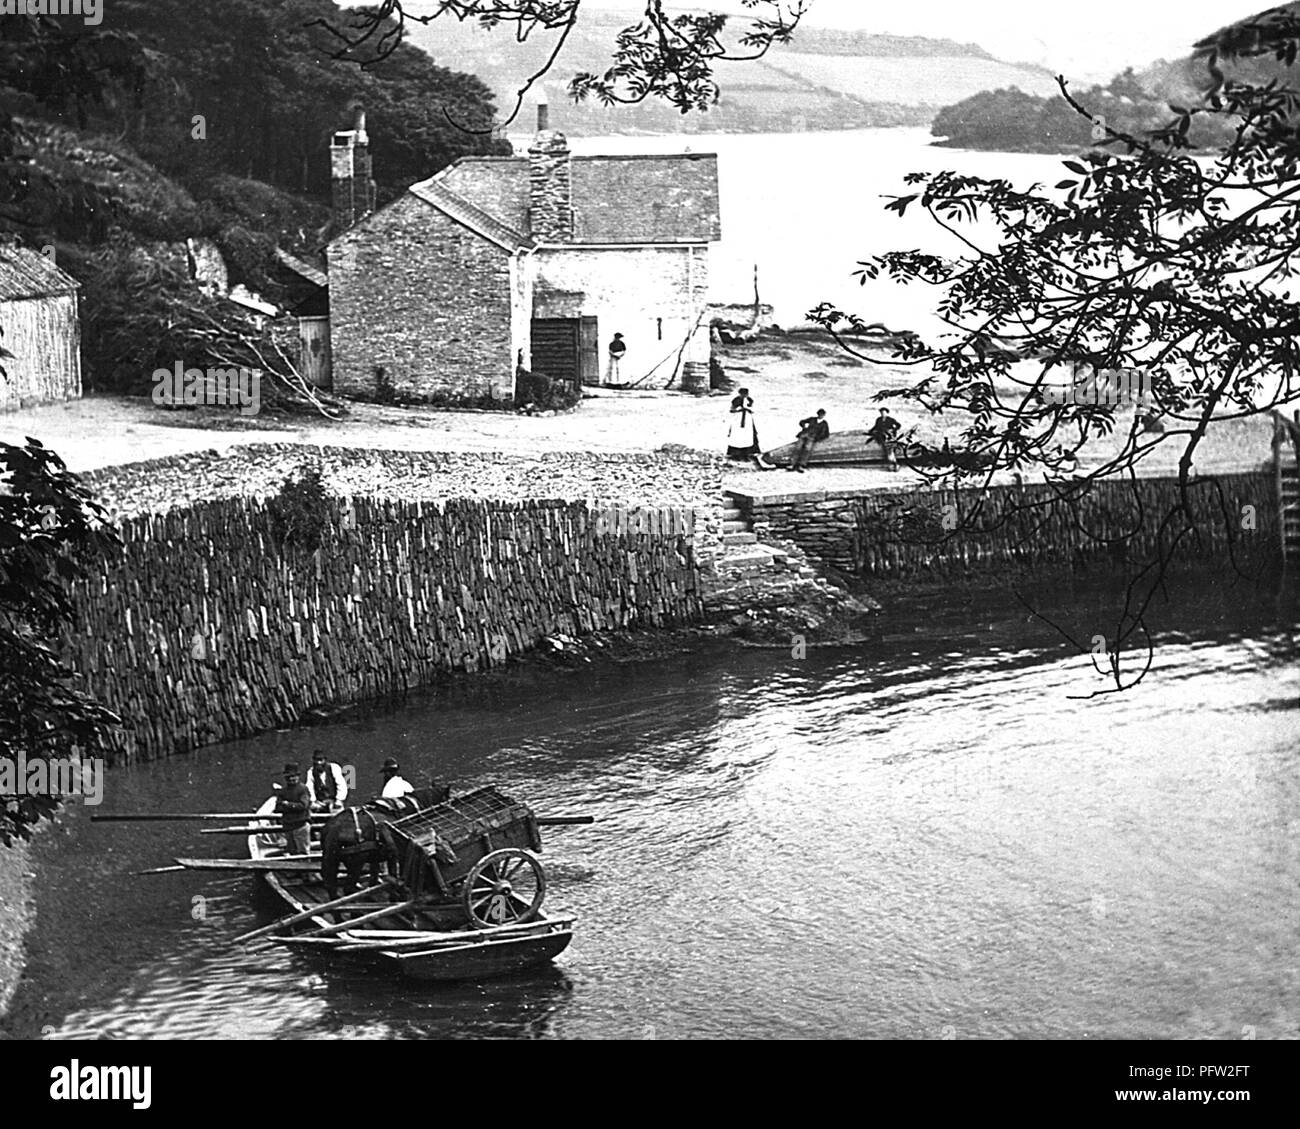 King Harry's Ferry, Cornwall, Victorian period - Stock Image